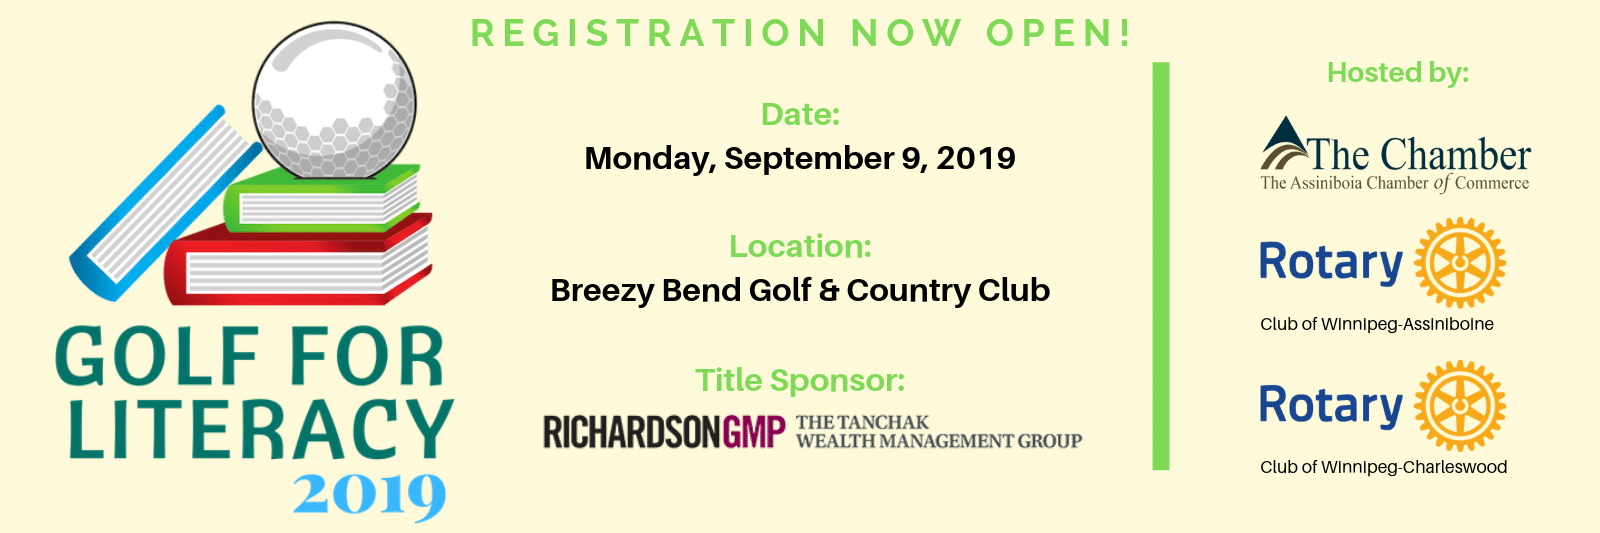 WebsiteBanner1600x533_May8toSept9.2019_GolfForLiteracy.png